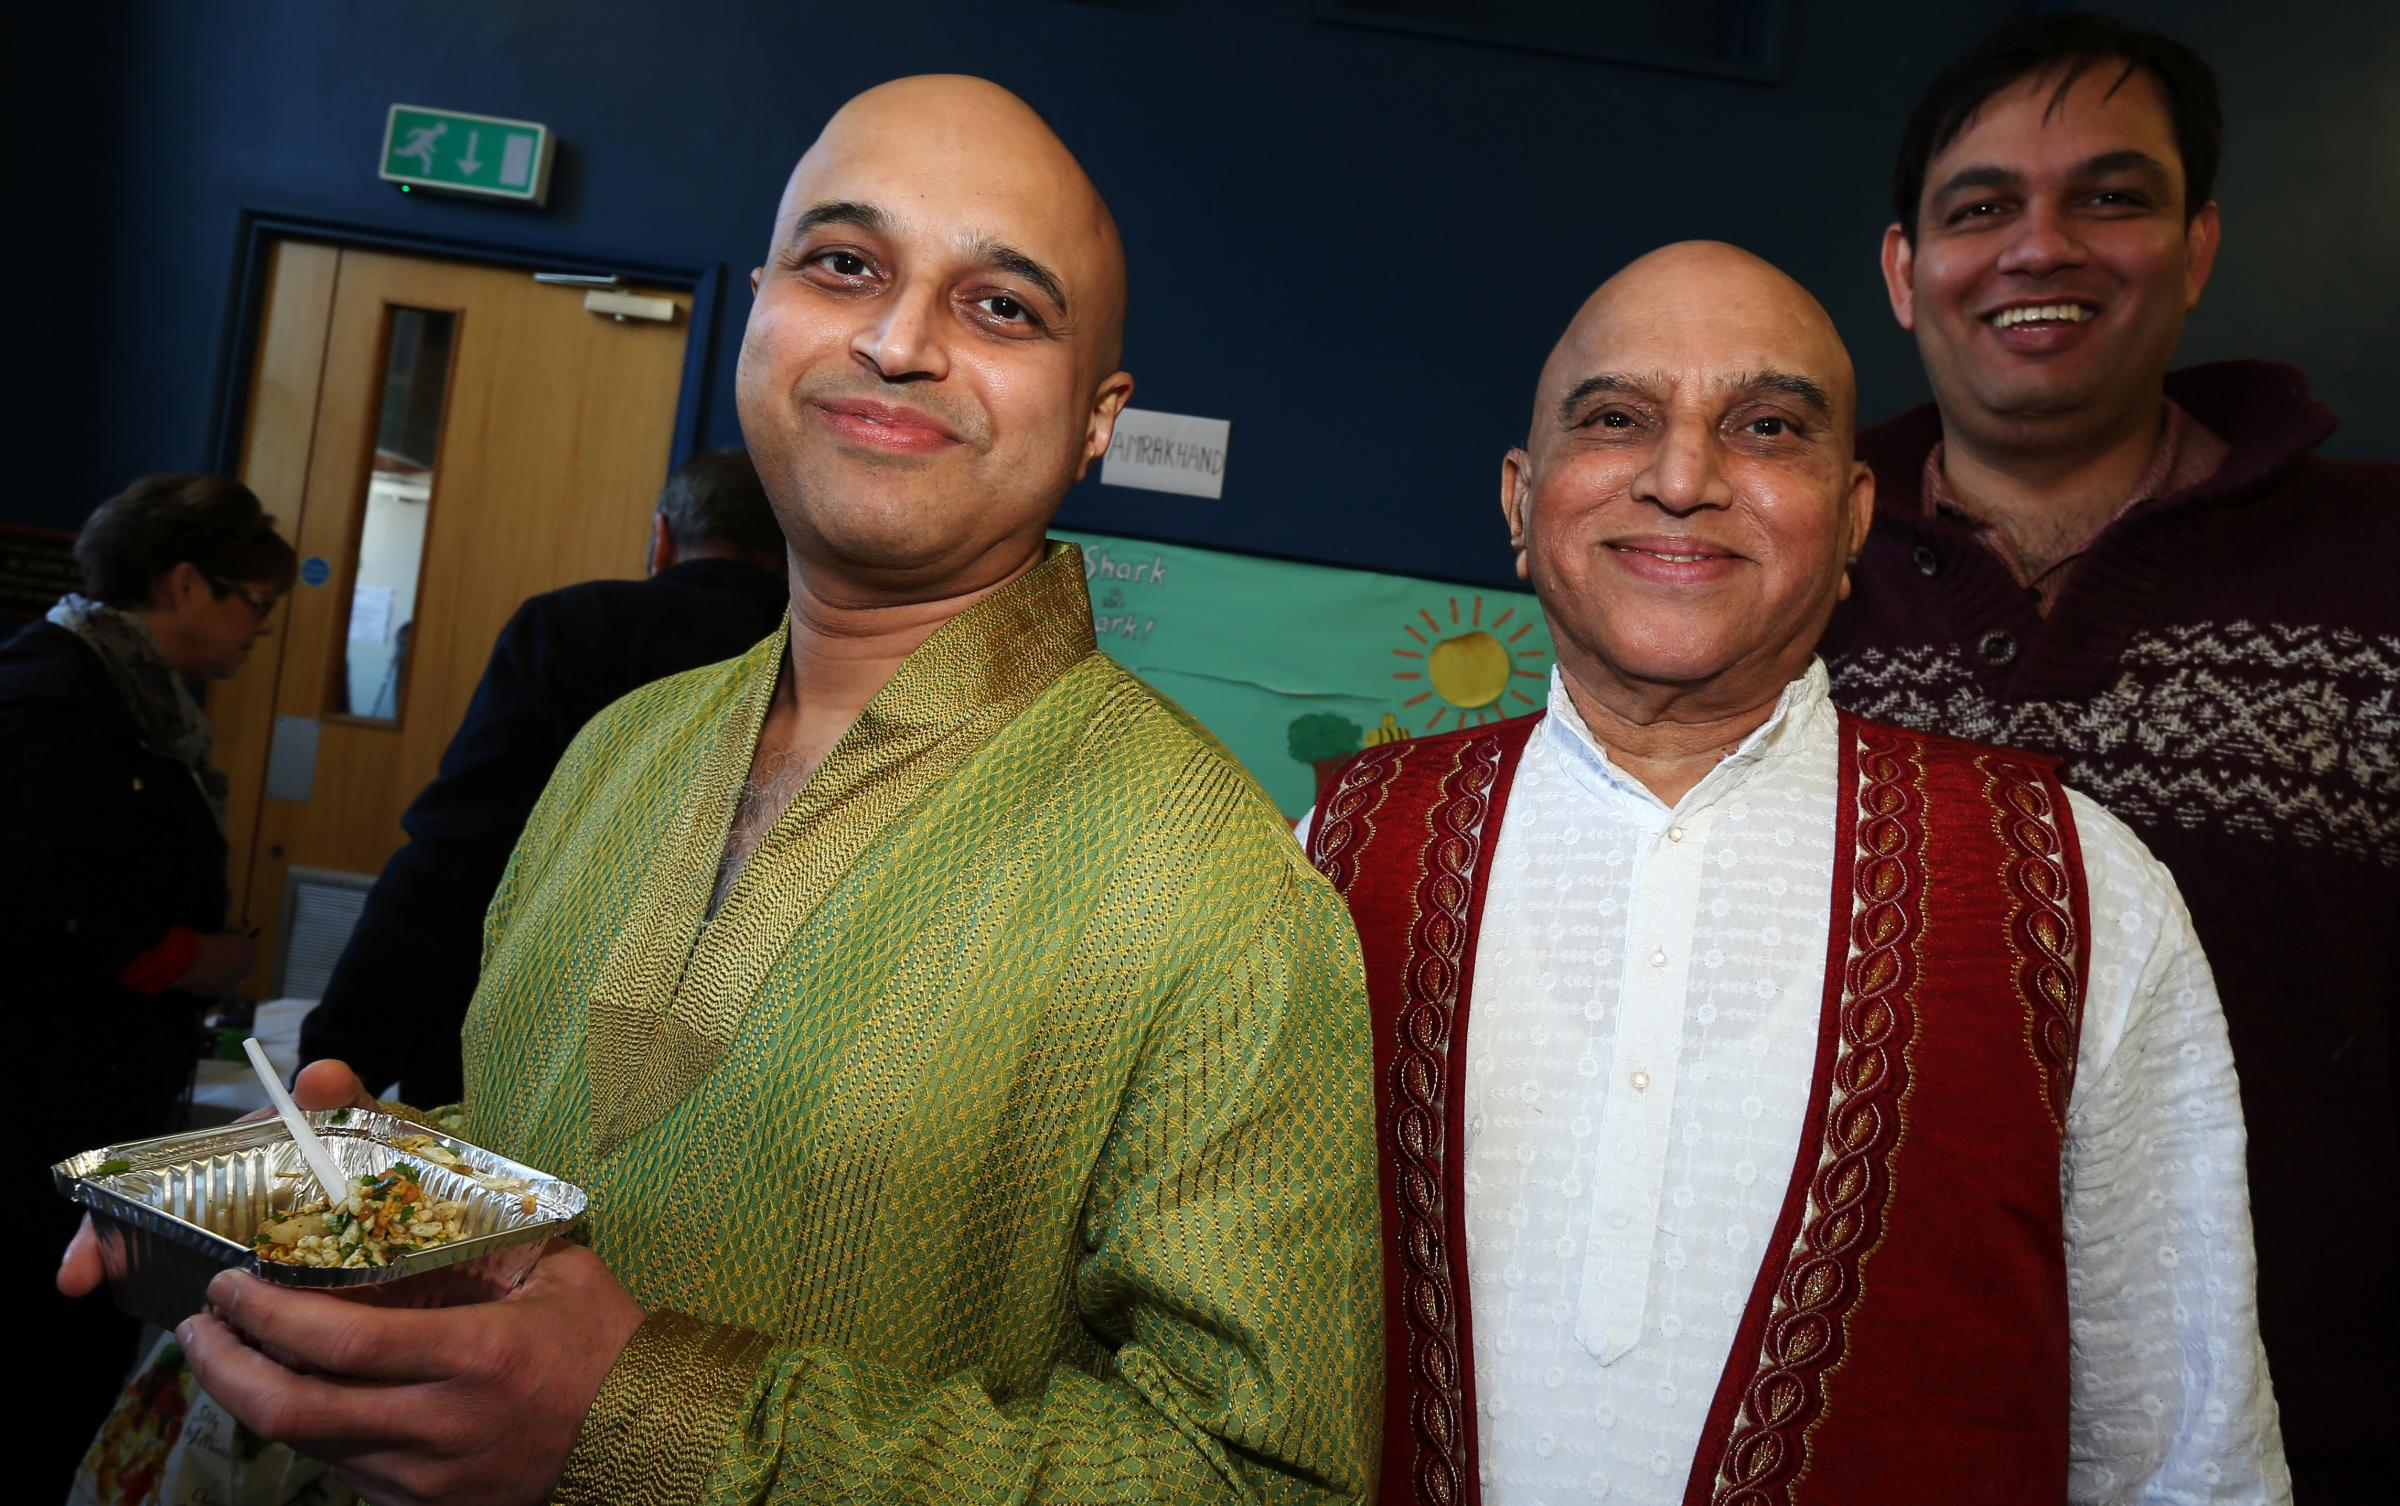 Marathi Indian community food festival, Chandler's Ford Methodist Church.                 Picture: Chris Moorhouse         Sunday 25th February 2018.